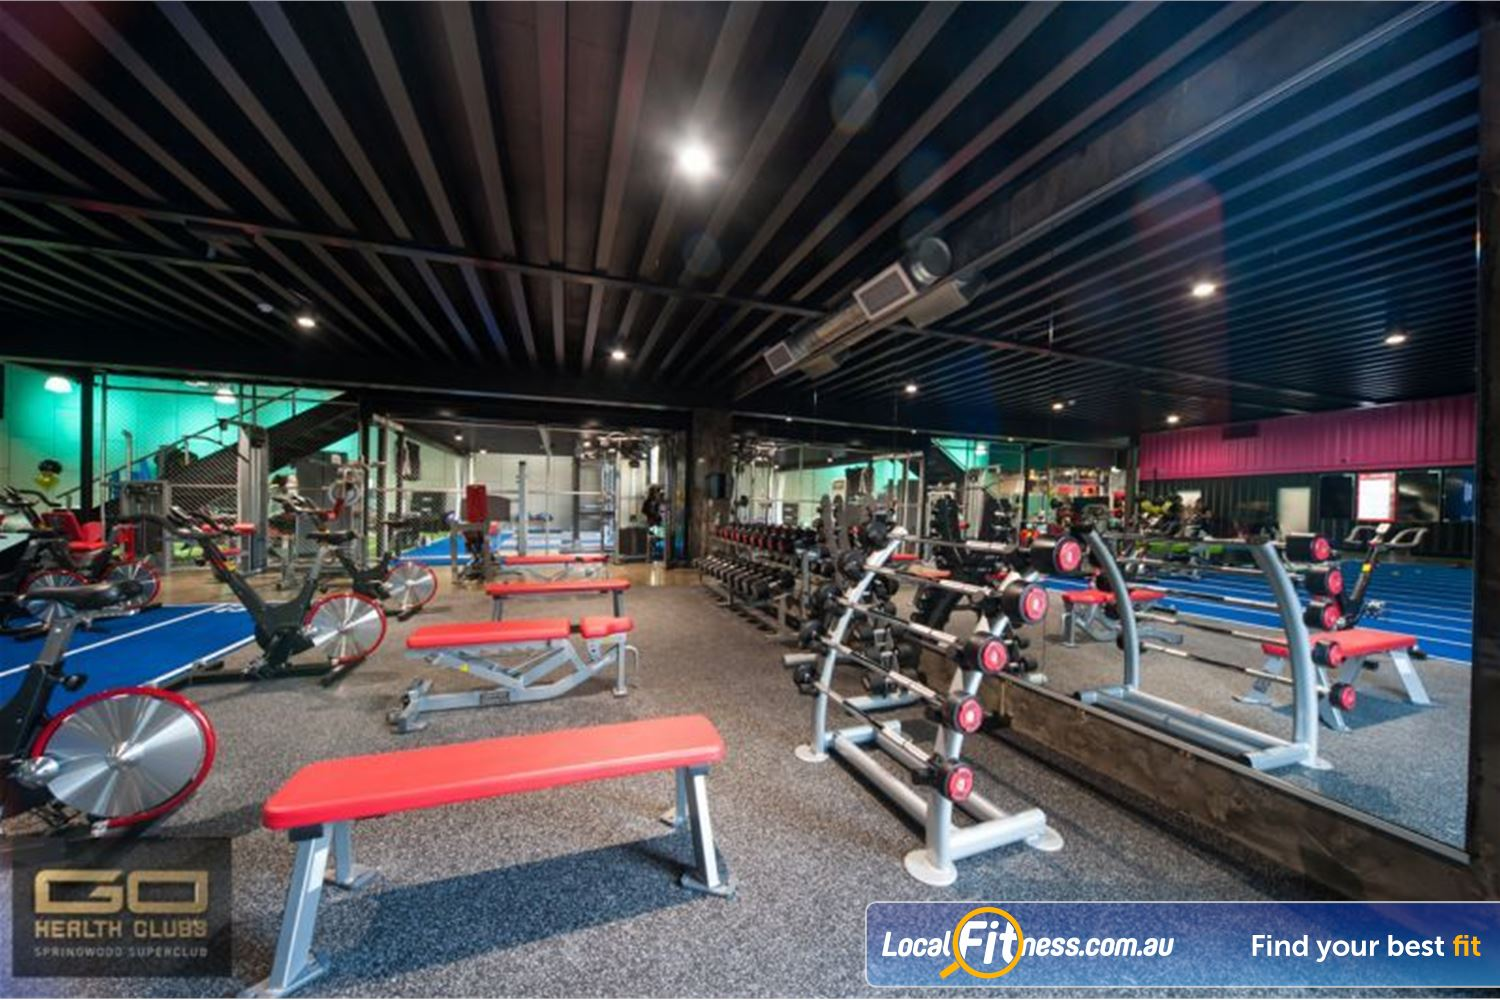 Goodlife Health Clubs Near Shailer Park Our free-weights area is equipped with dumbbells, barbells, benches and more.